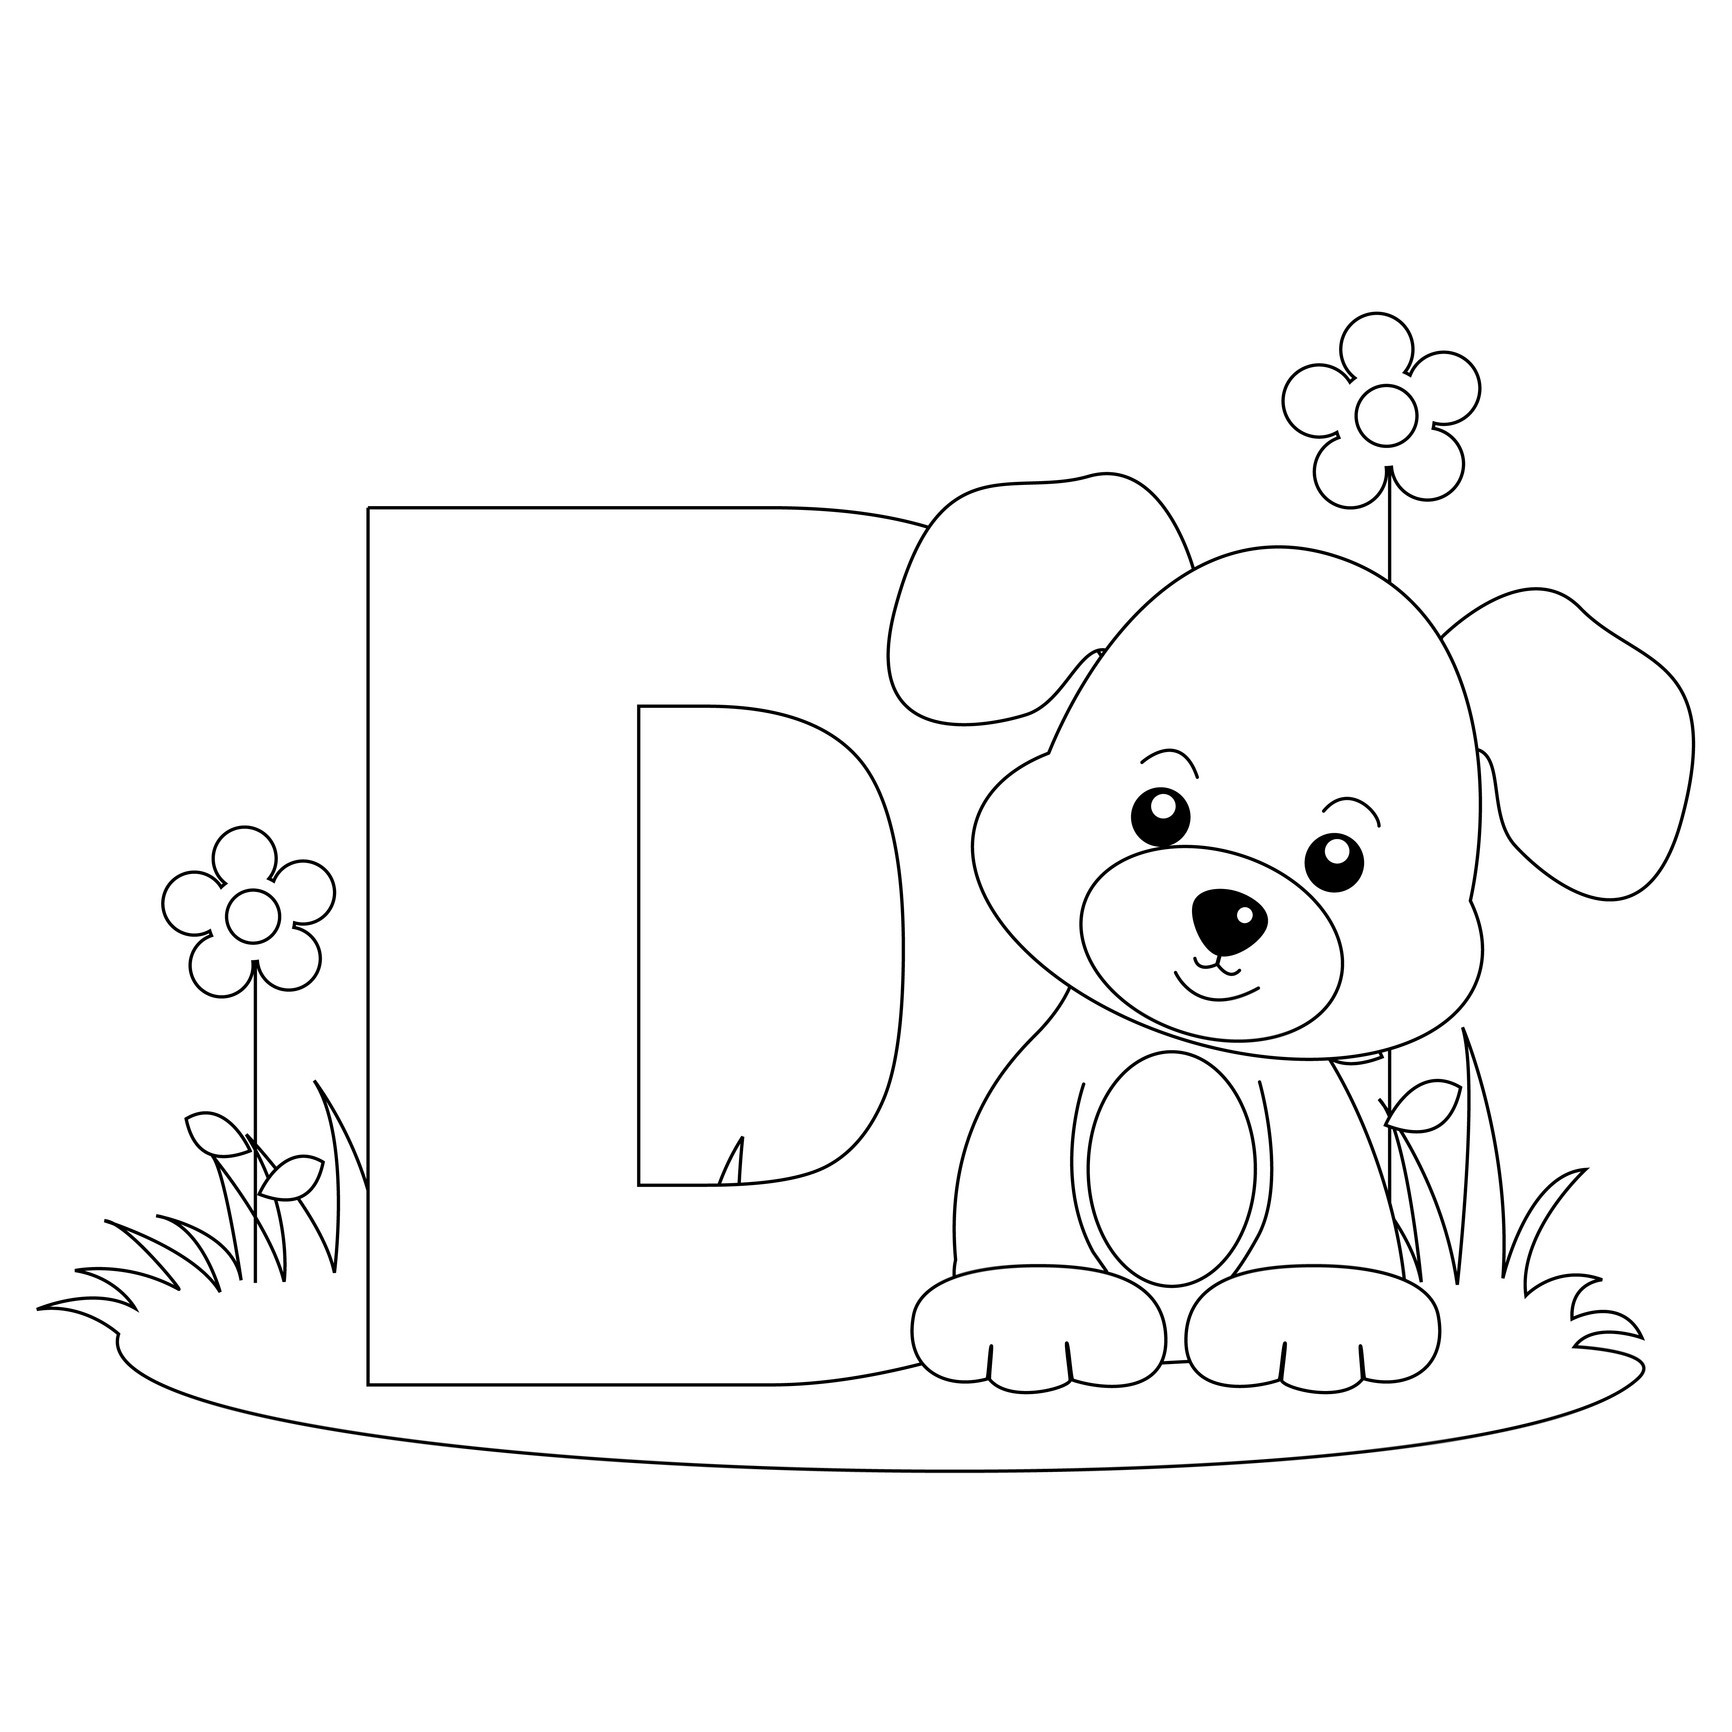 letter d coloring pages preschool black | Free Printable Alphabet Coloring Pages for Kids - Best ...